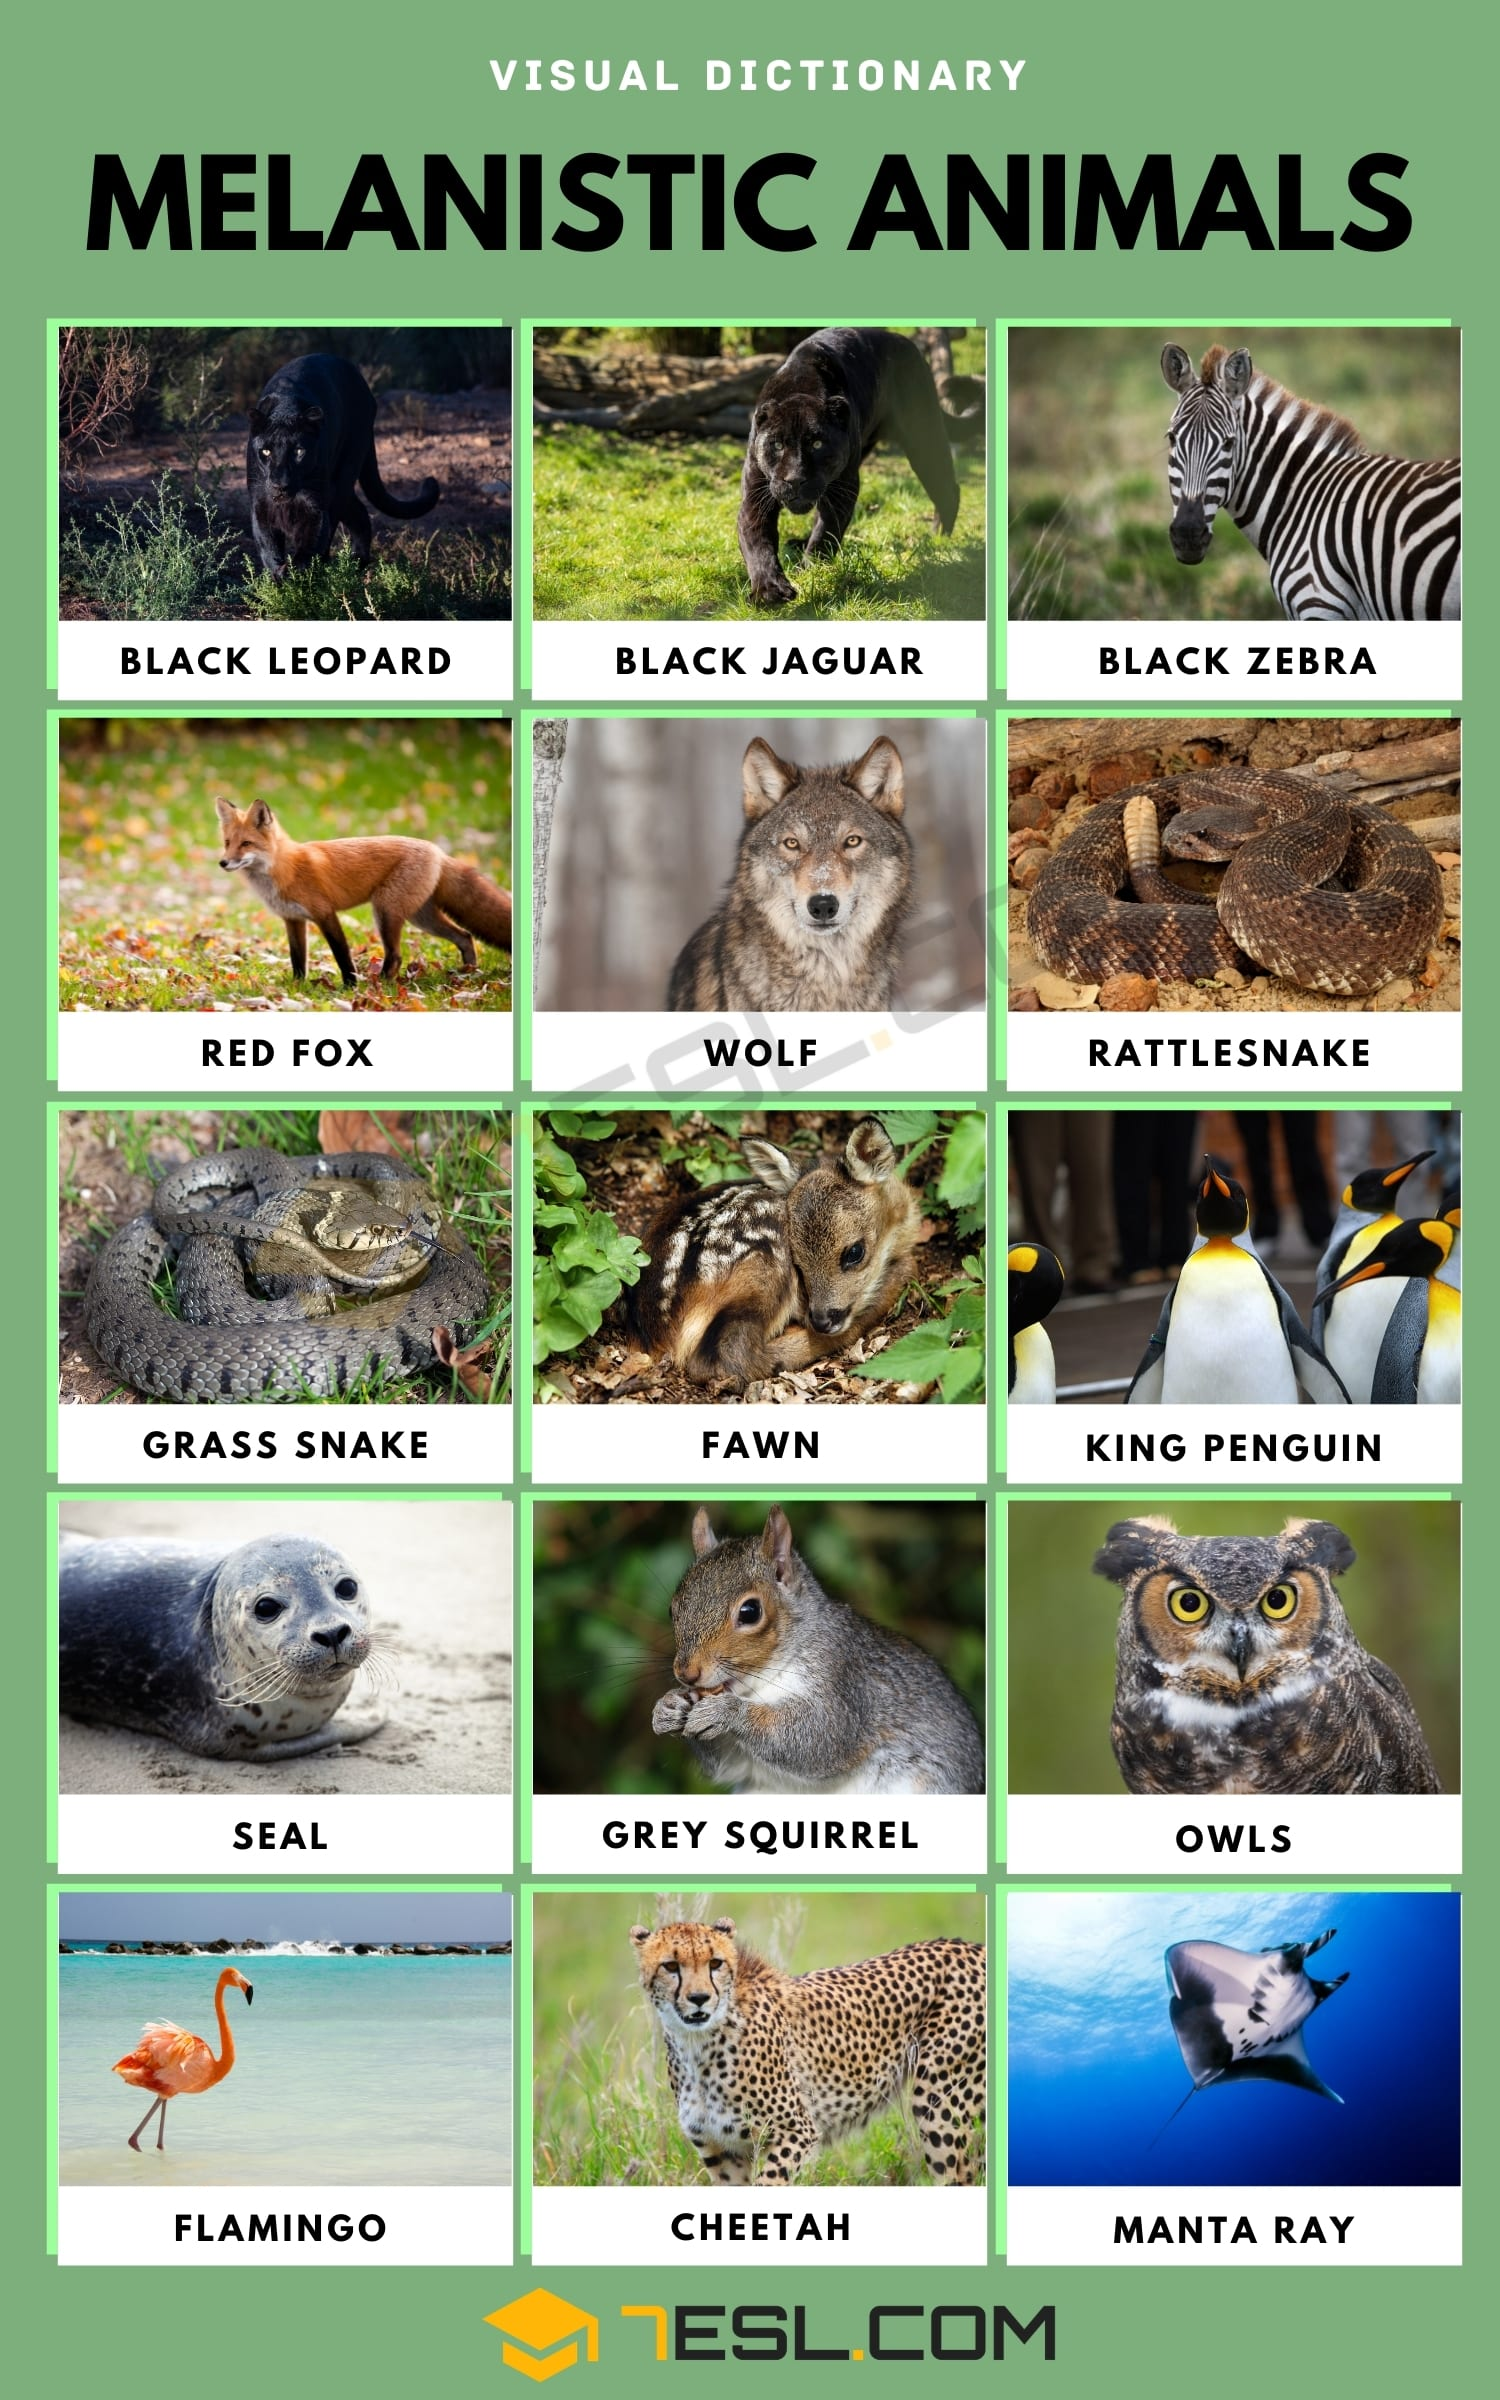 List of Melanistic Animals with Interesting Facts & Pictures